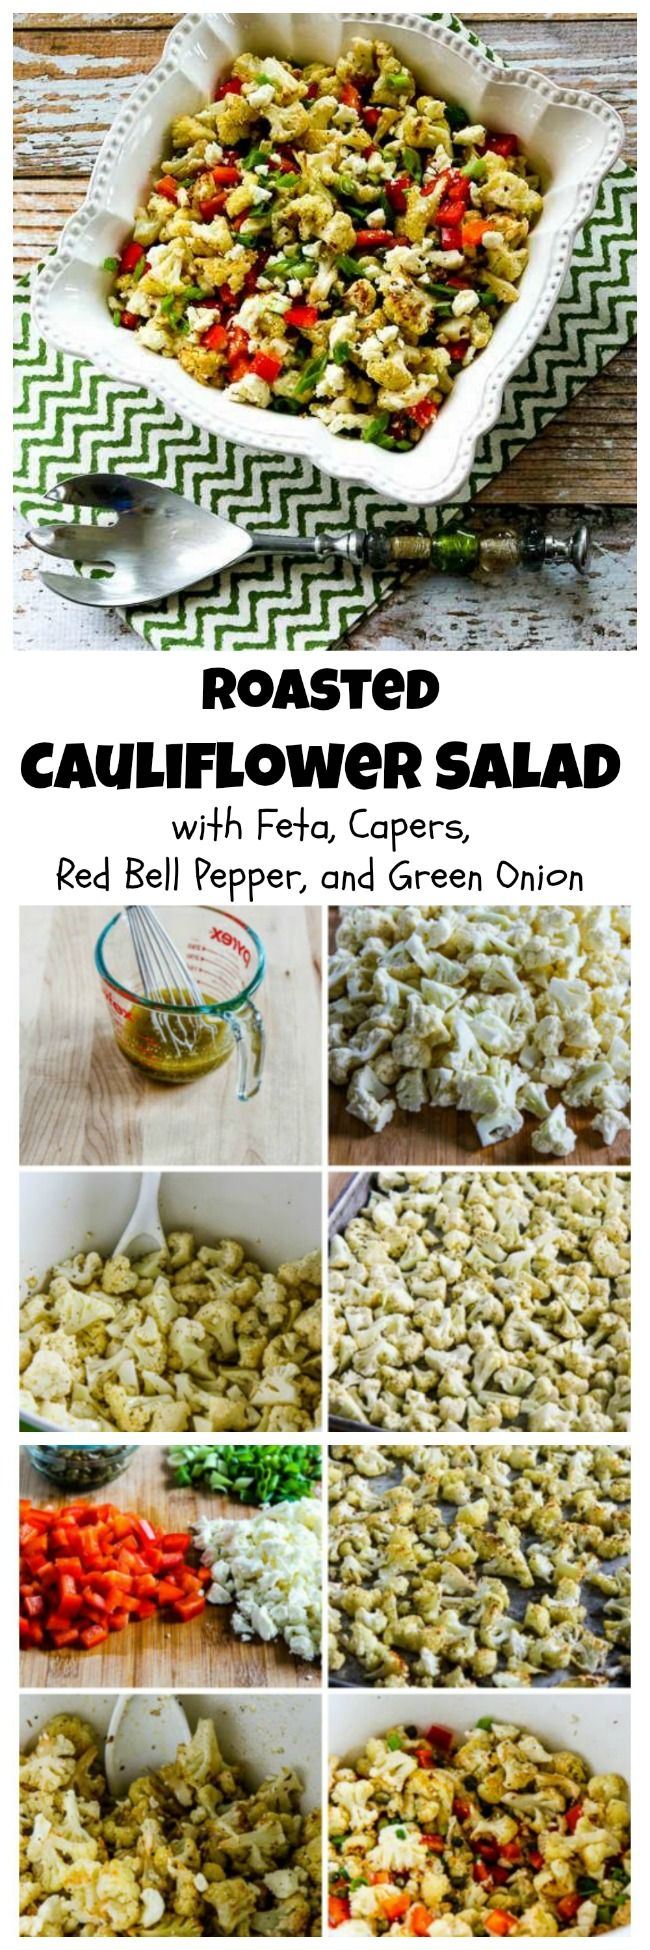 Roasted Cauliflower Salad with Feta, Capers, Red Bell Pepper, and Green Onion is so delicious, and this fantastic salad is Low Carb and Gluten Free